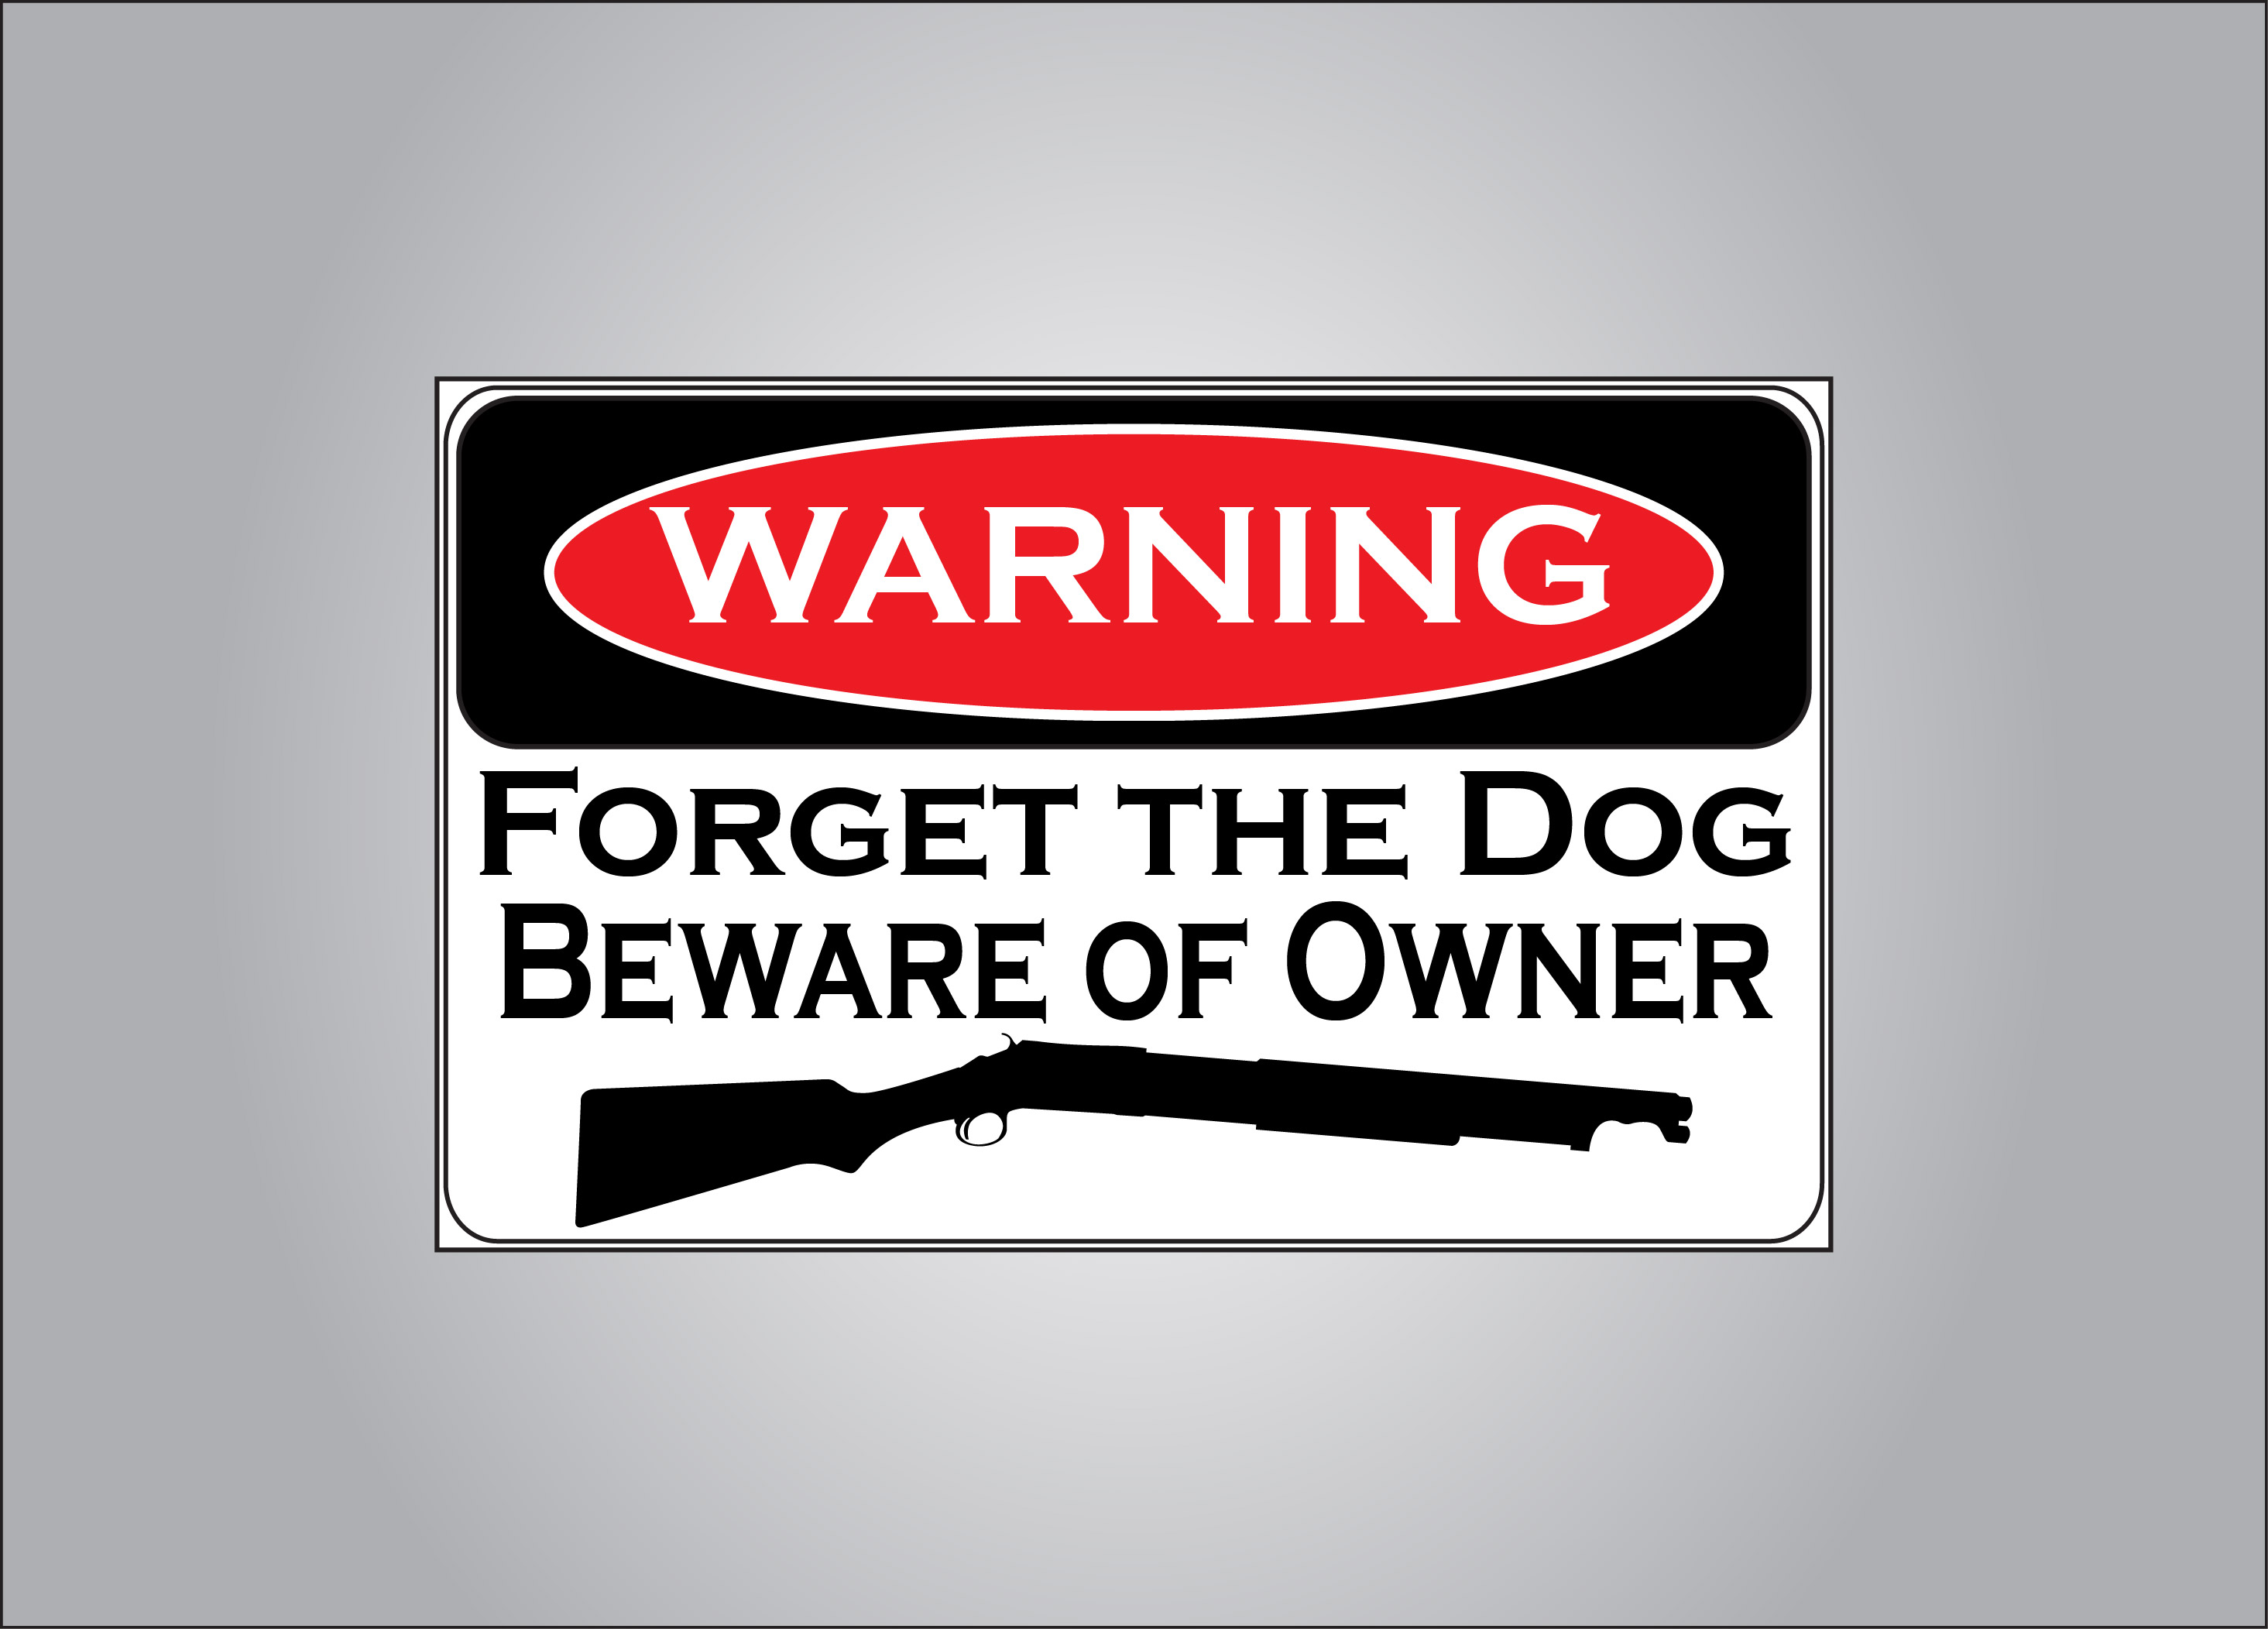 Let everyone know it is you they should fear not a dog with this warning sticker.